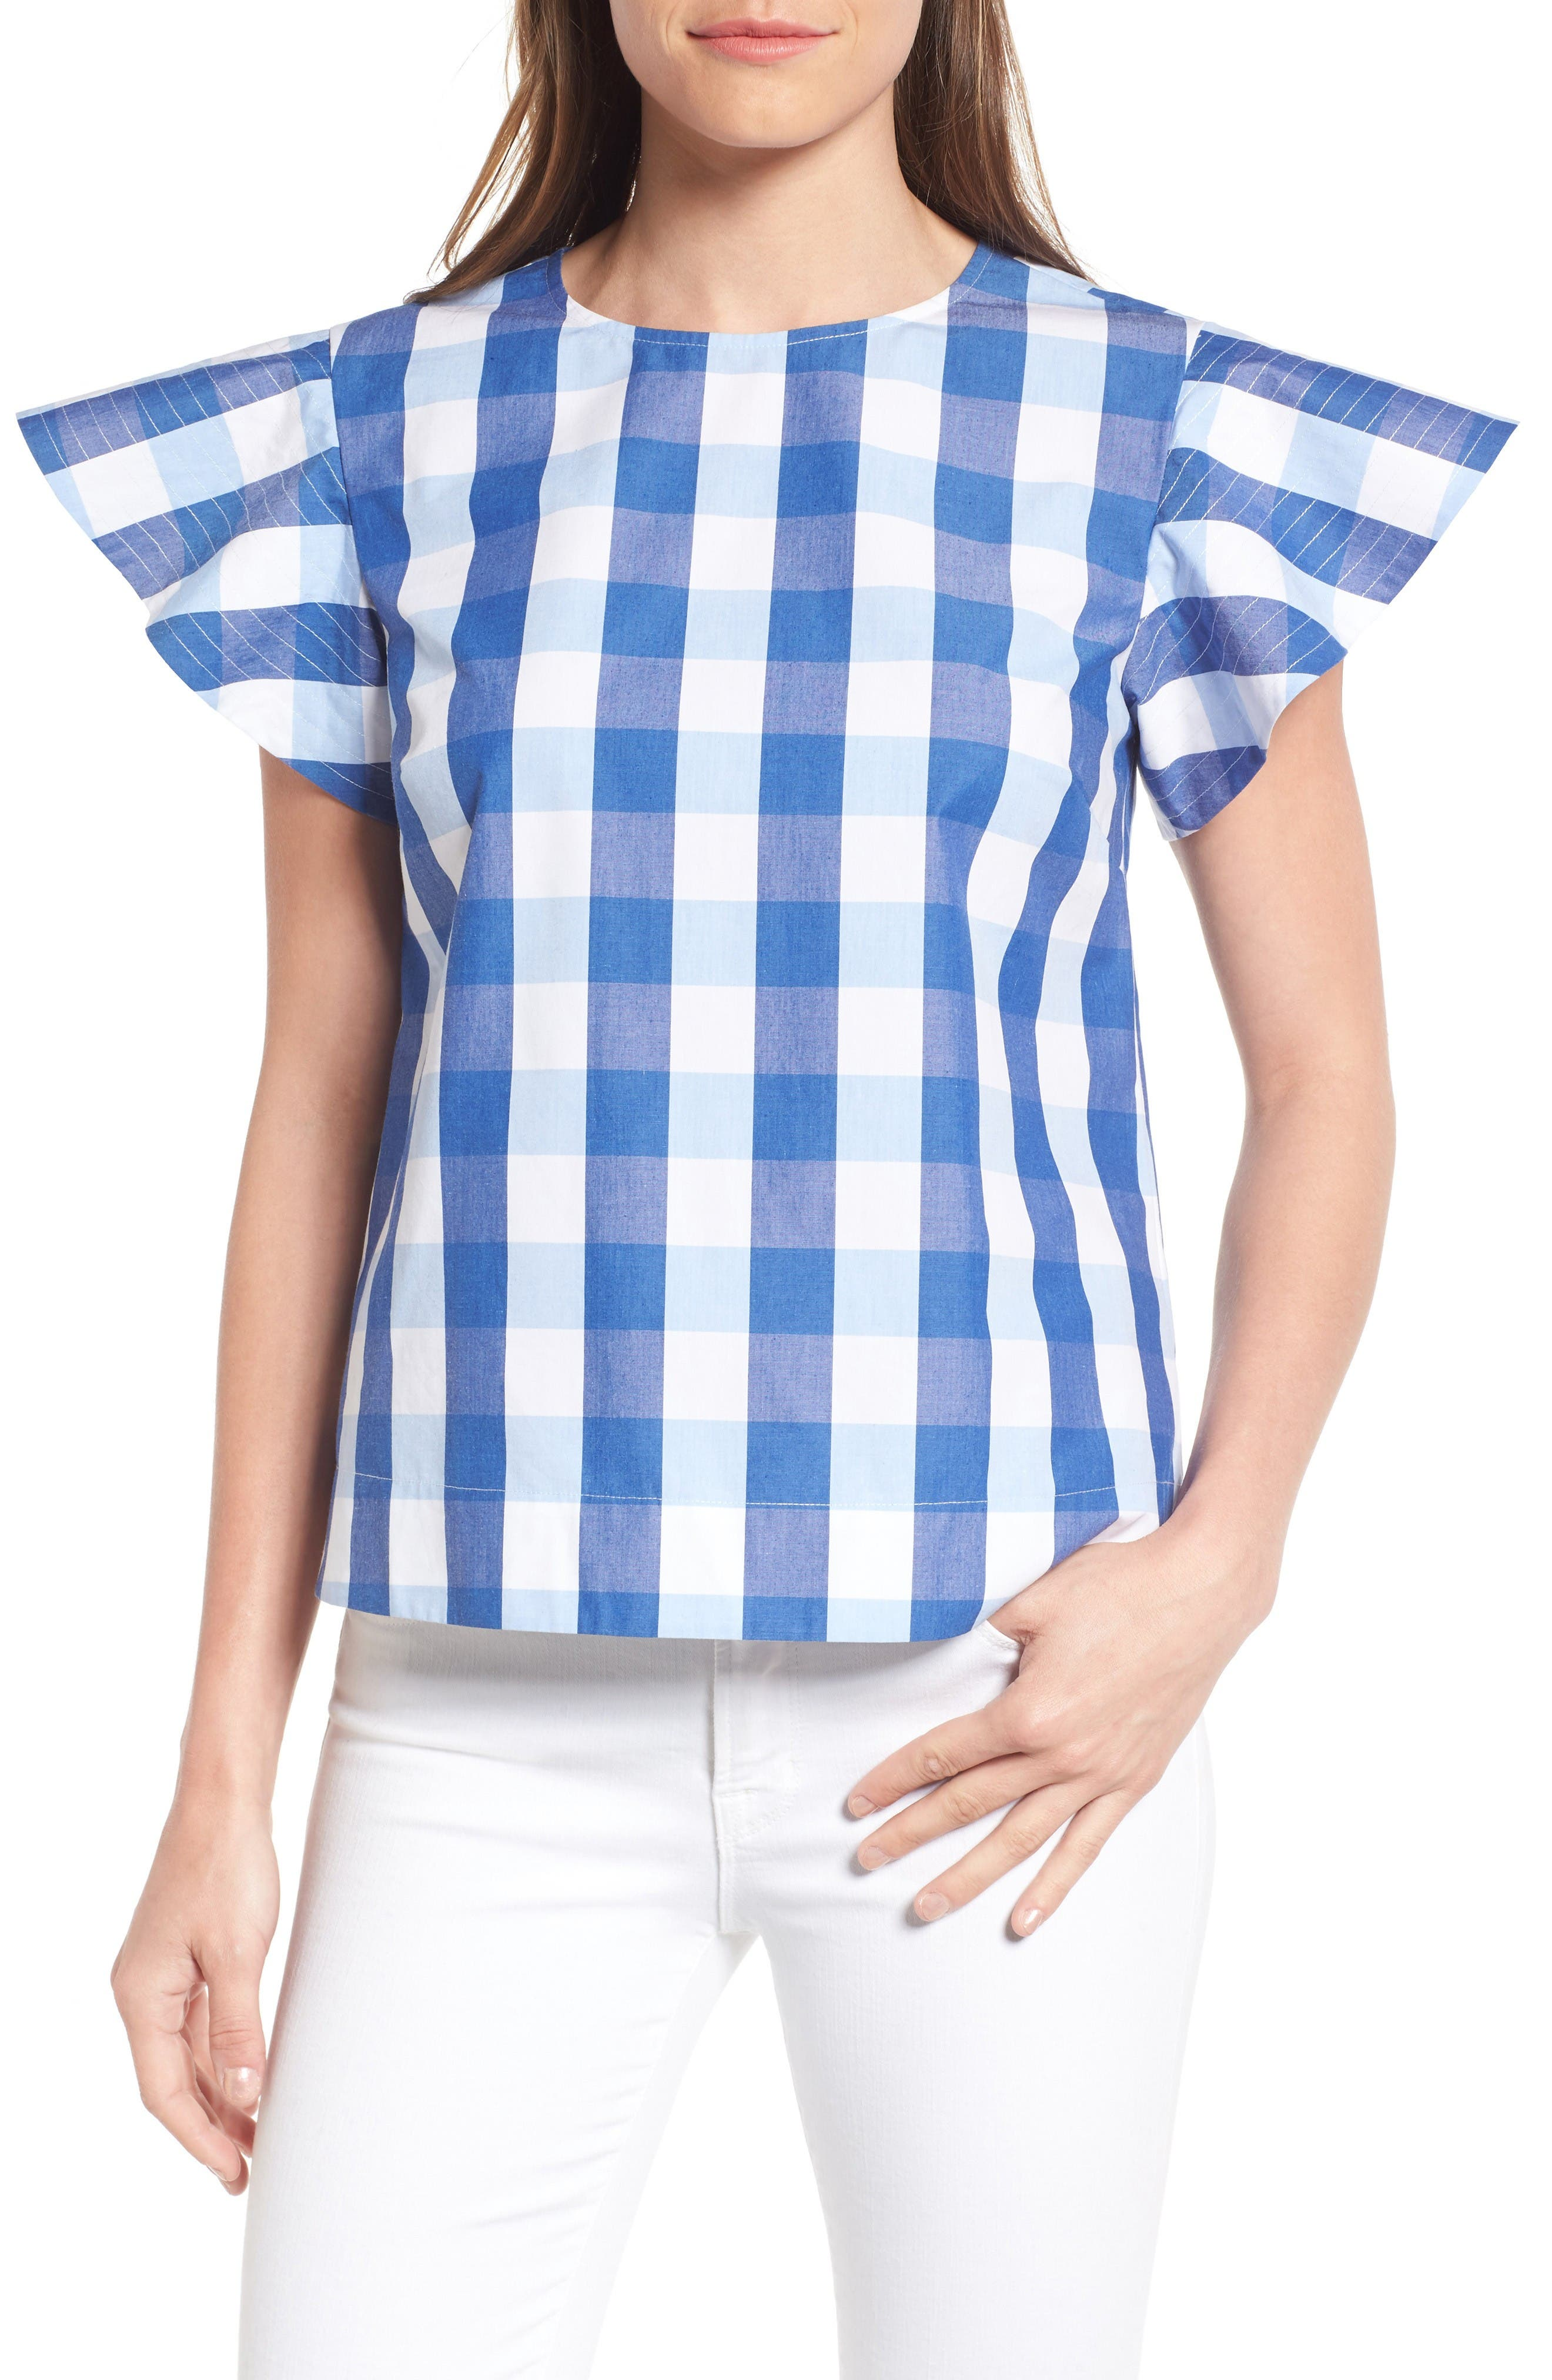 Main Image - Draper James Cloister Gingham Cotton Top (Nordstrom Exclusive)